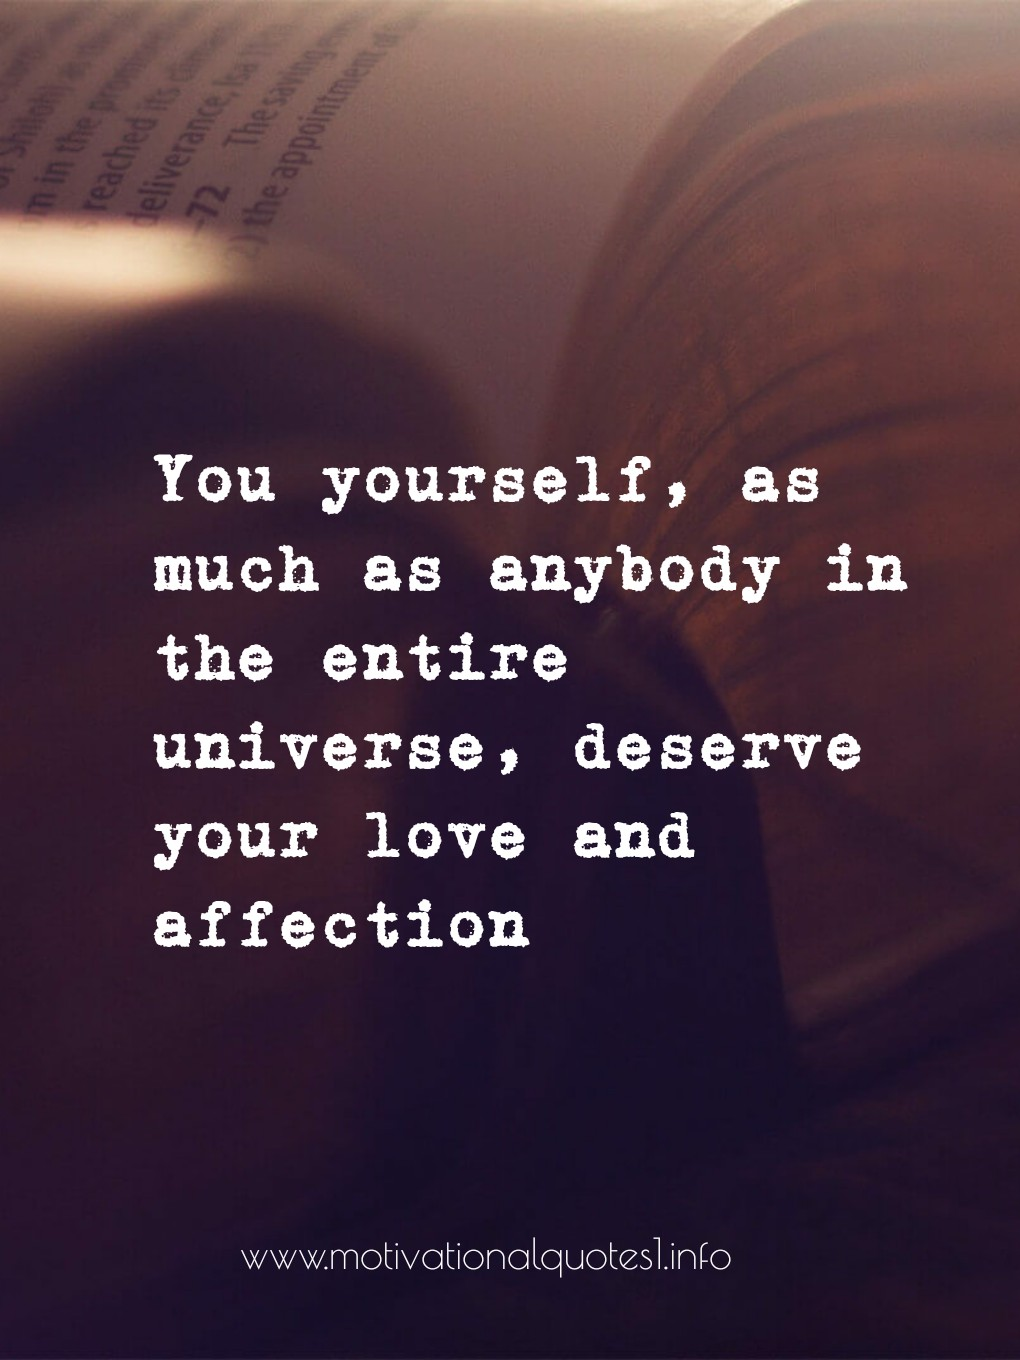 Love-Yourself-Self-Esteem-Self-Worth-and-Self-Love-Quotes-Images